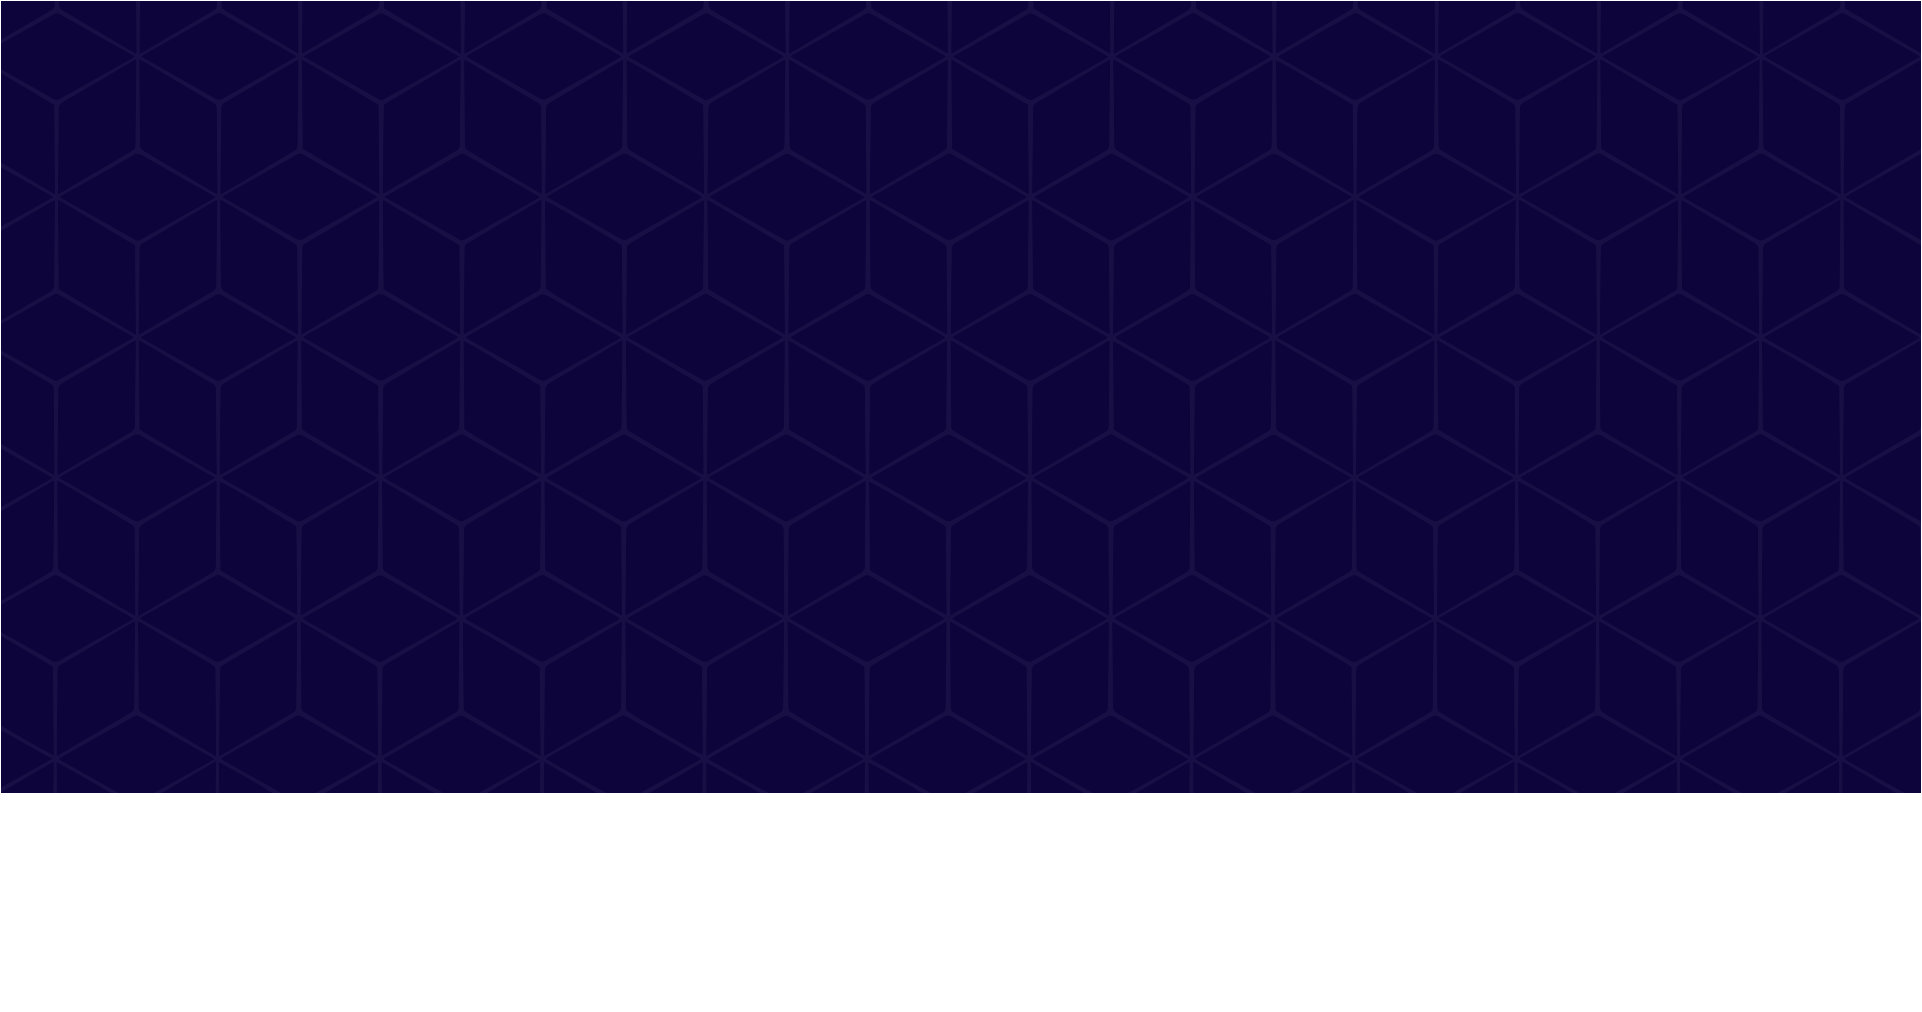 banner pattern with navy background